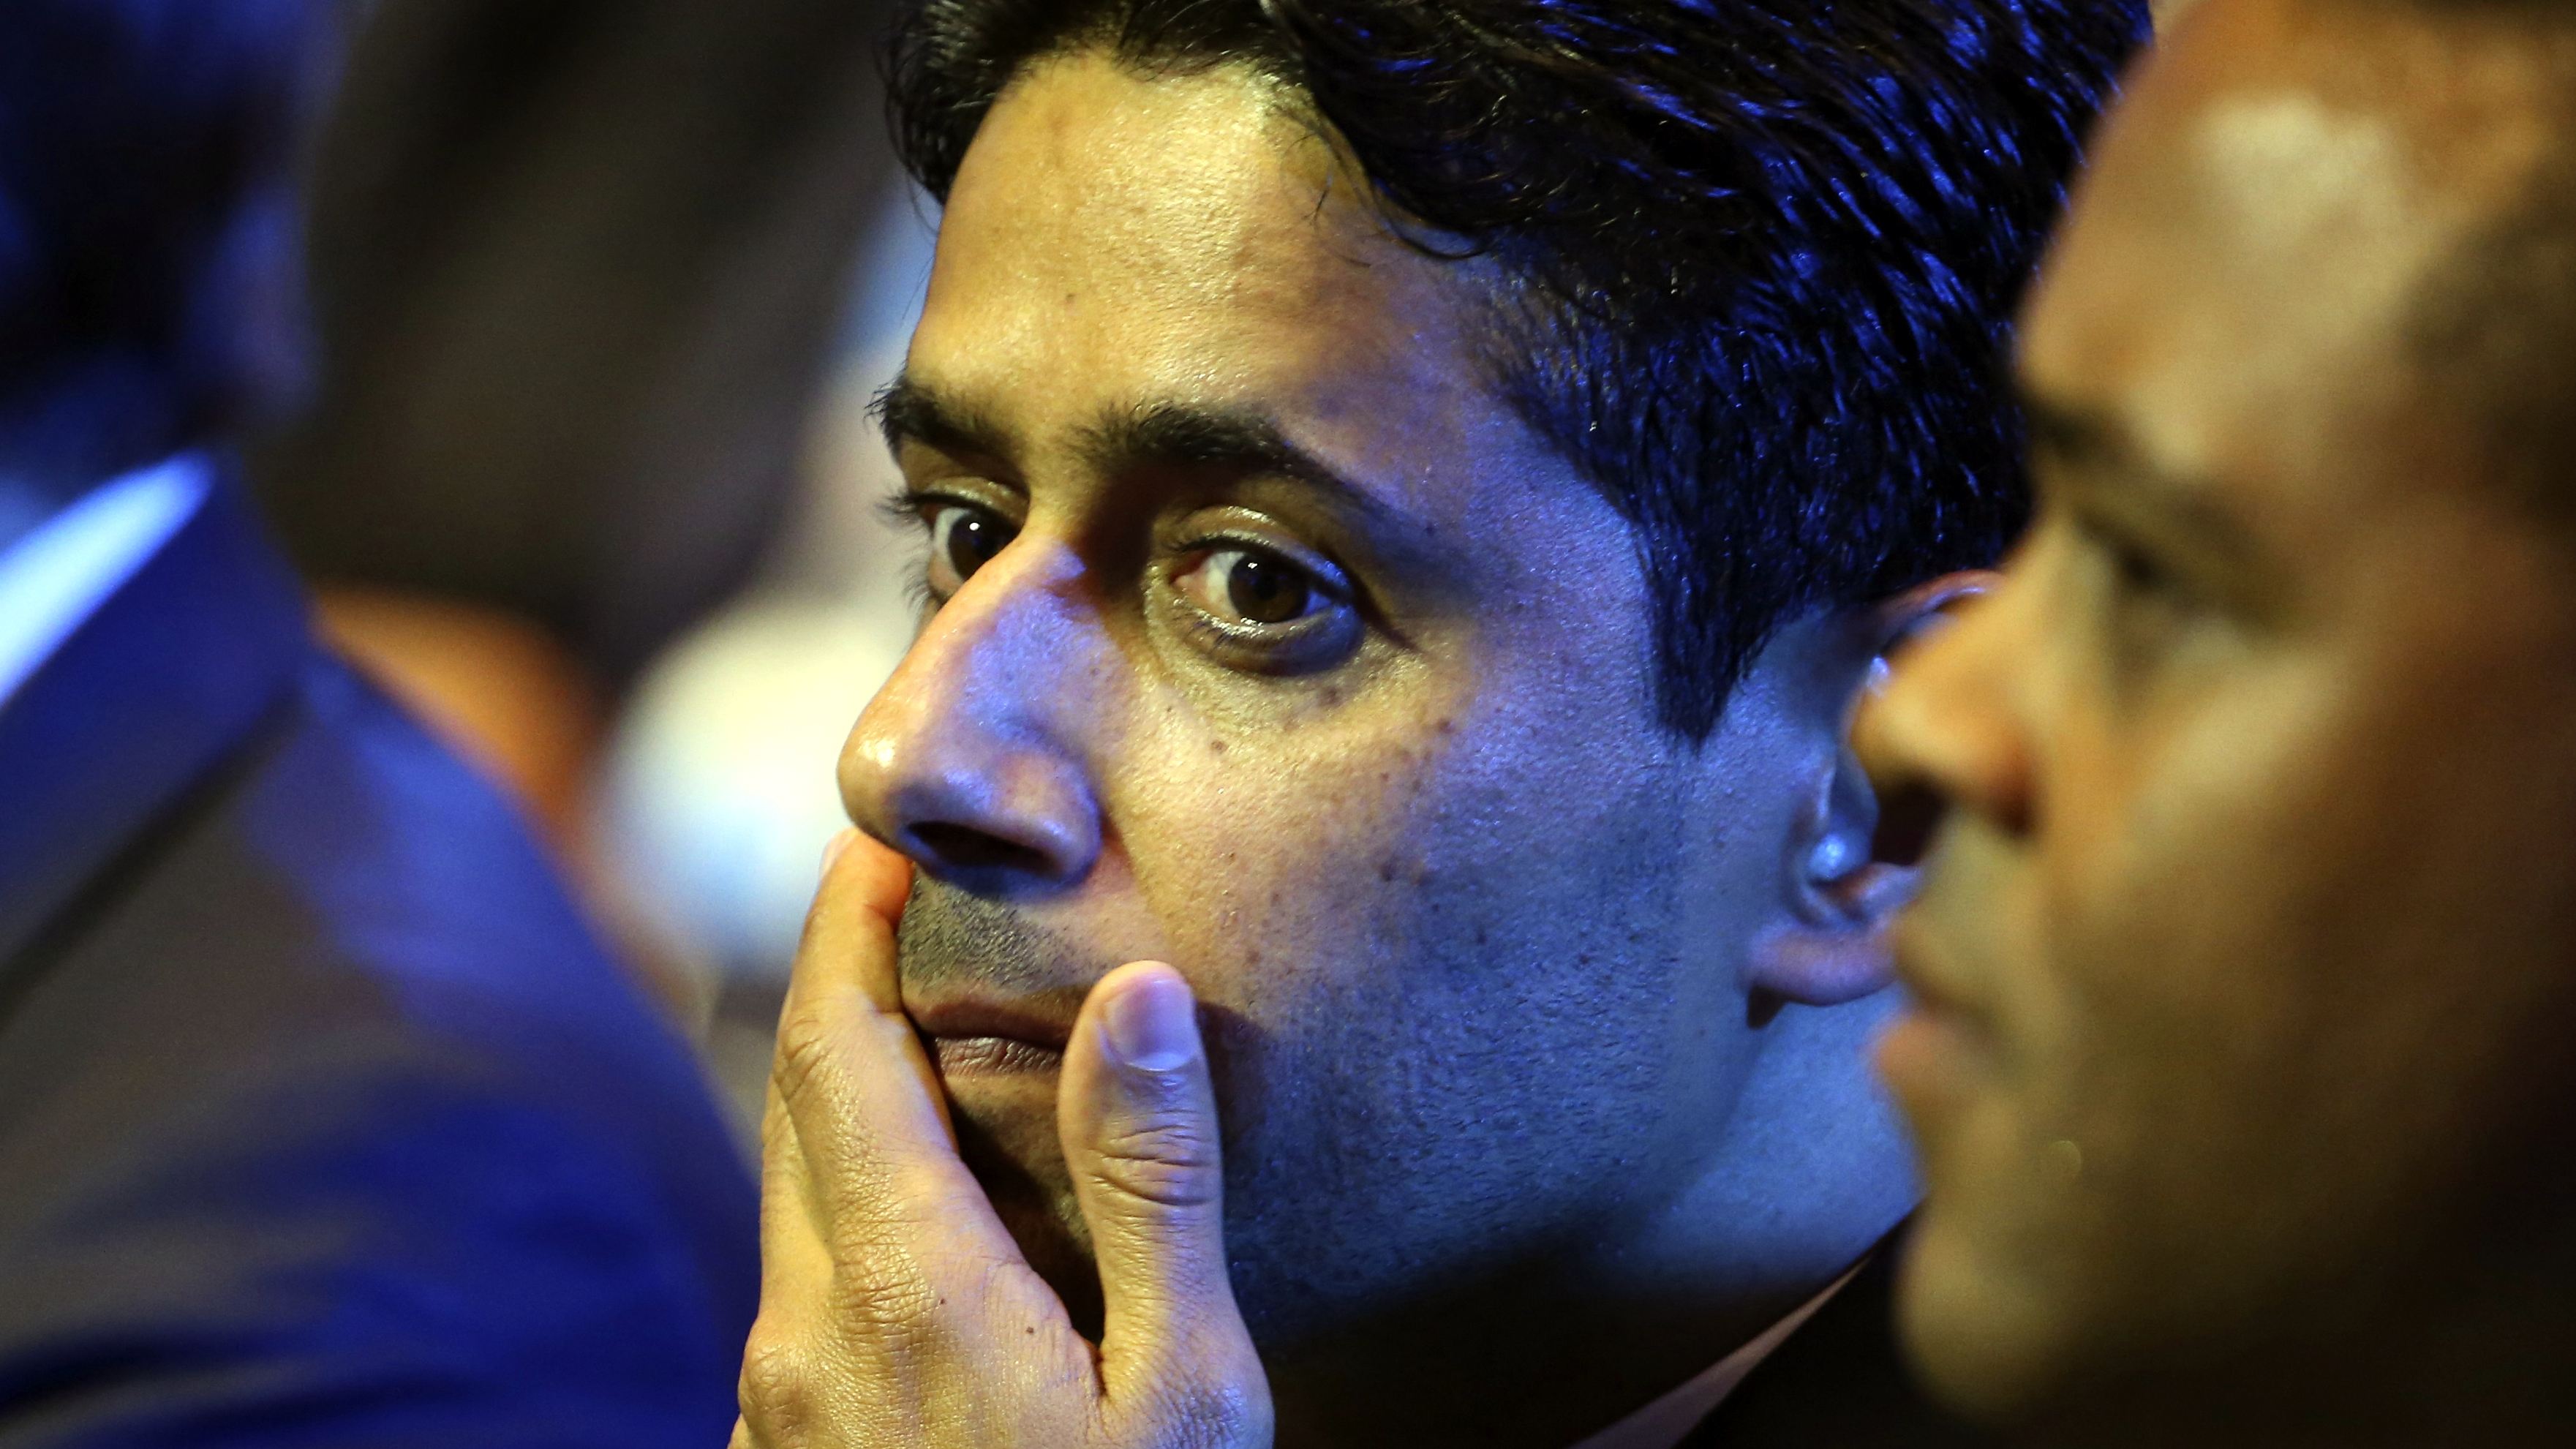 Nasser Al-Khelaifi, Paris Saint Germain's club owner and owner of Qatari TV channel Al Jazeera Sport, President of beIN Sport French TV channel reacts before the draw ceremony for the 2016/2017 Champions League Cup soccer competition at Monaco's Grimaldi Forum in Monaco, August 25, 2016.